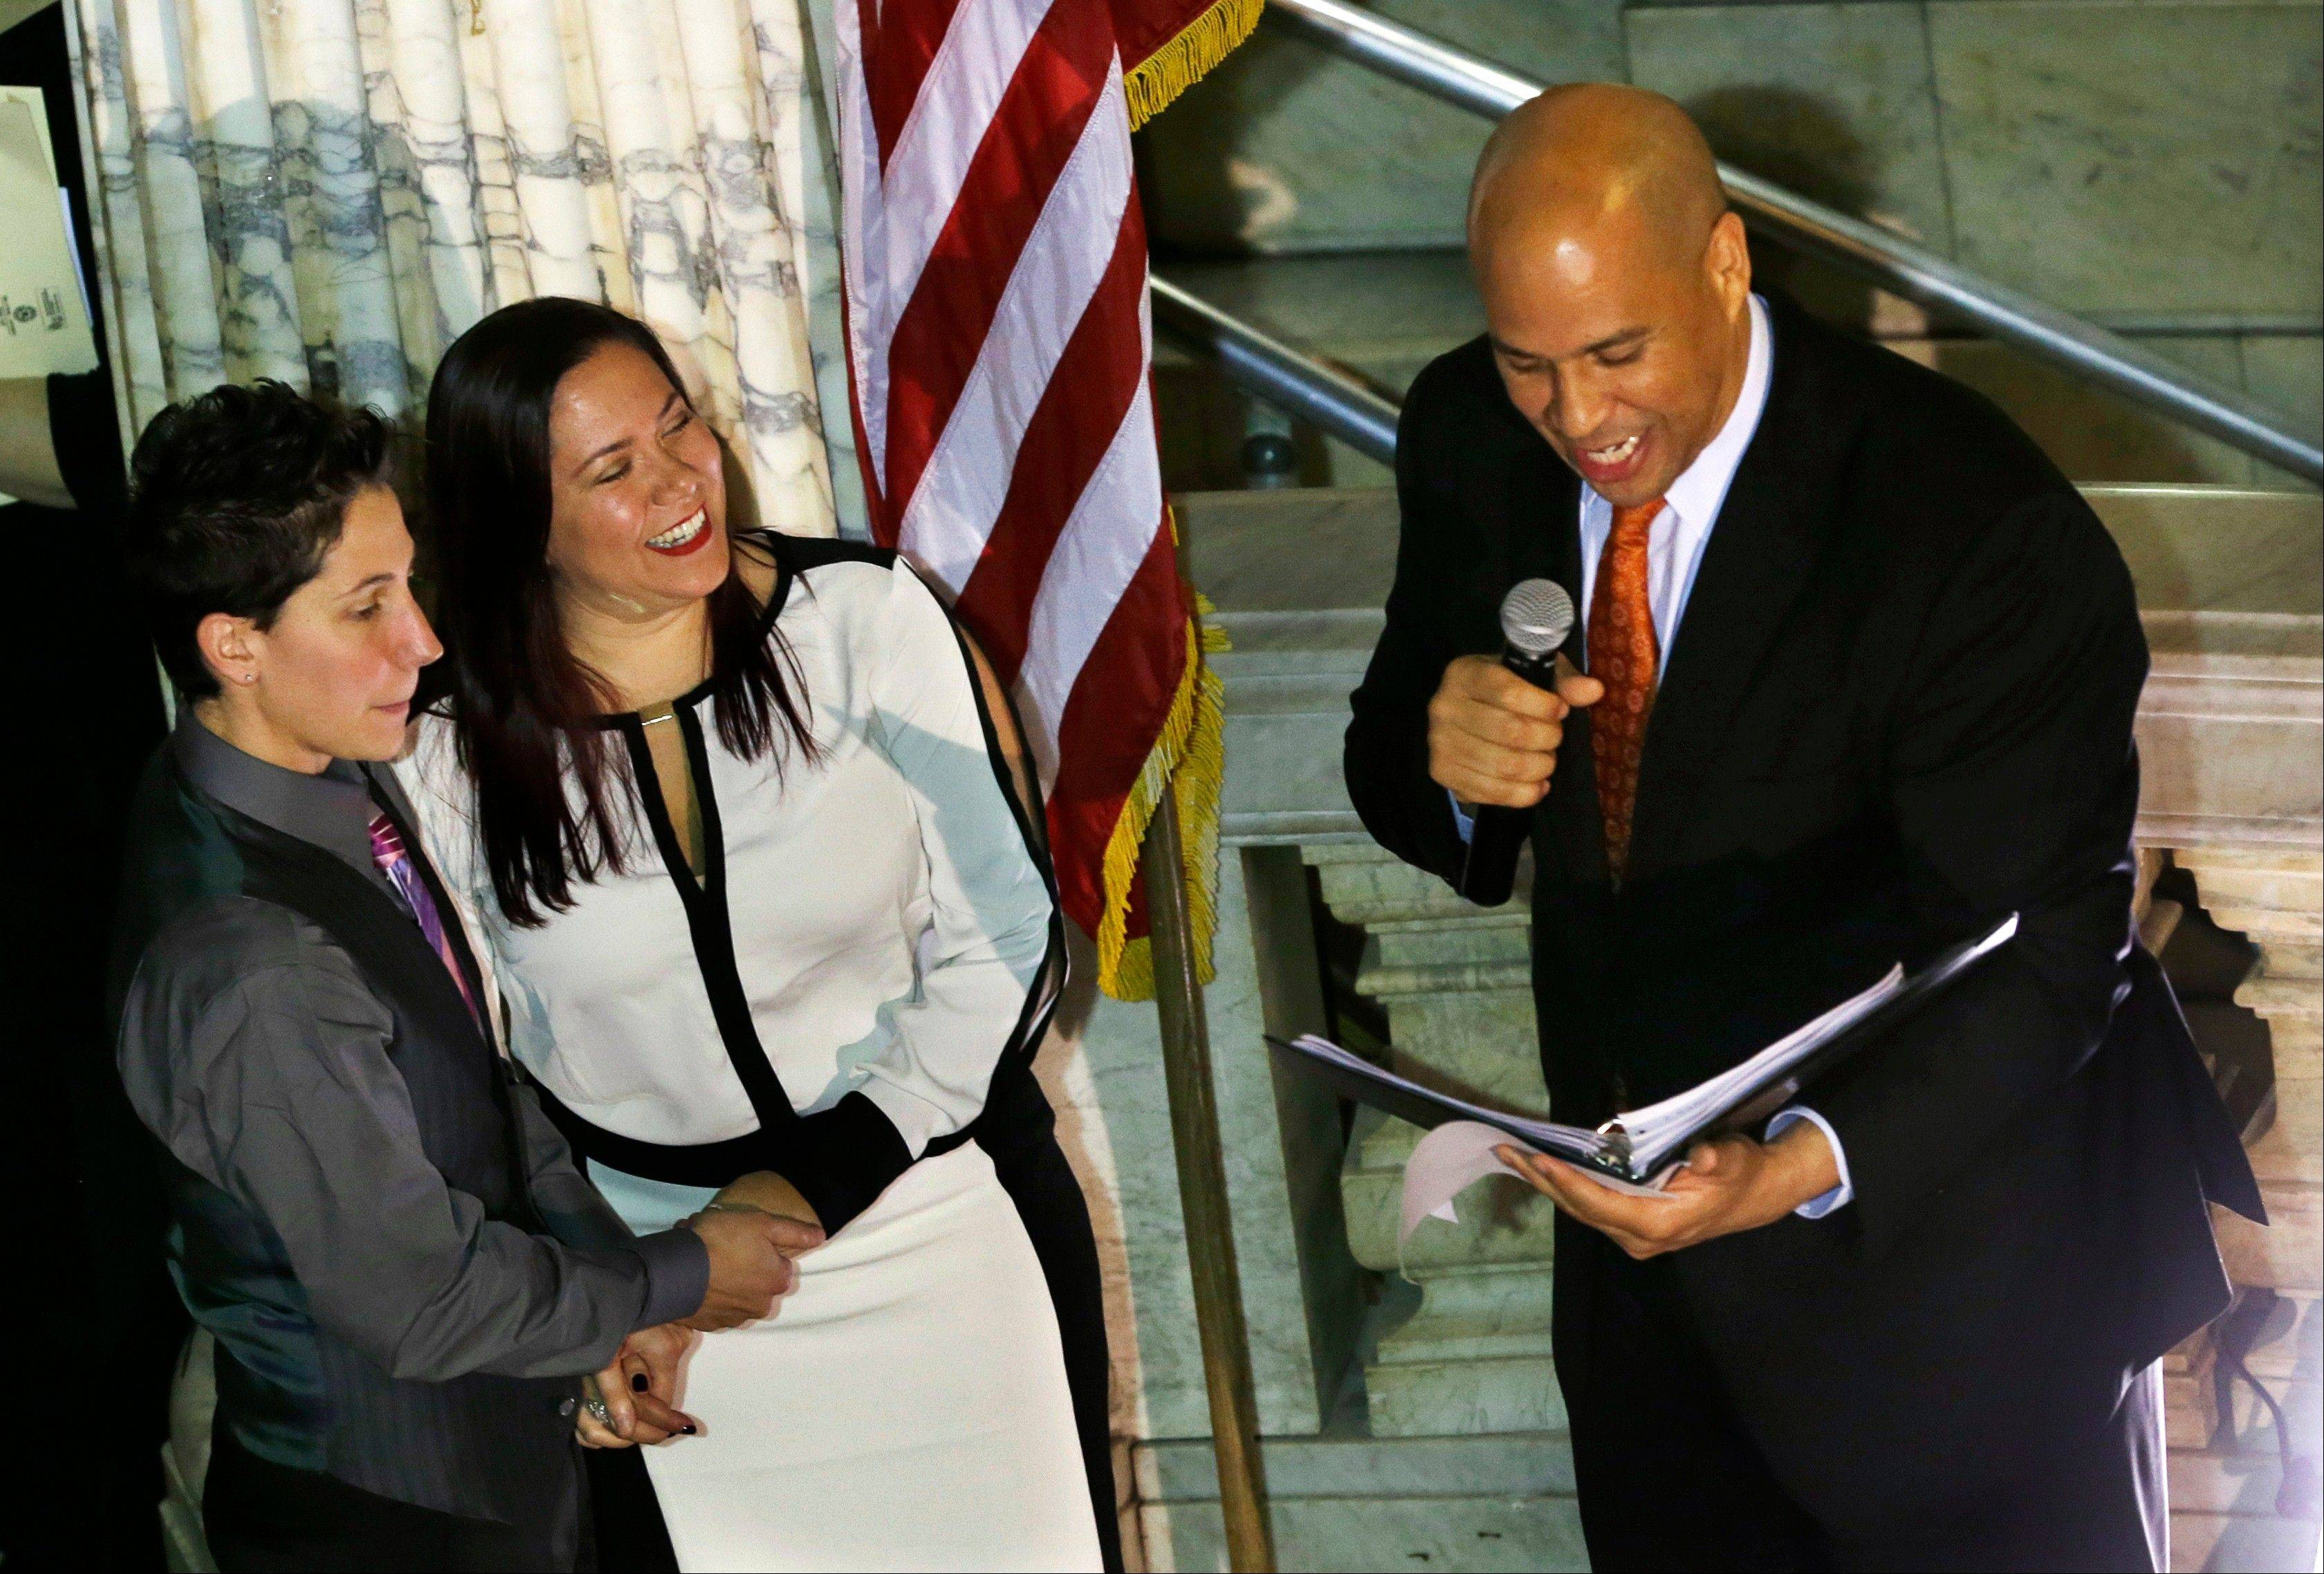 Newark Mayor and Senator-elect Cory Booker, right, officiates the ceremony for the same-sex marriage of Liz Salerno, left, 38, and Gabriela Celeiro, 34, center, at Newark City Hall just after midnight Monday.